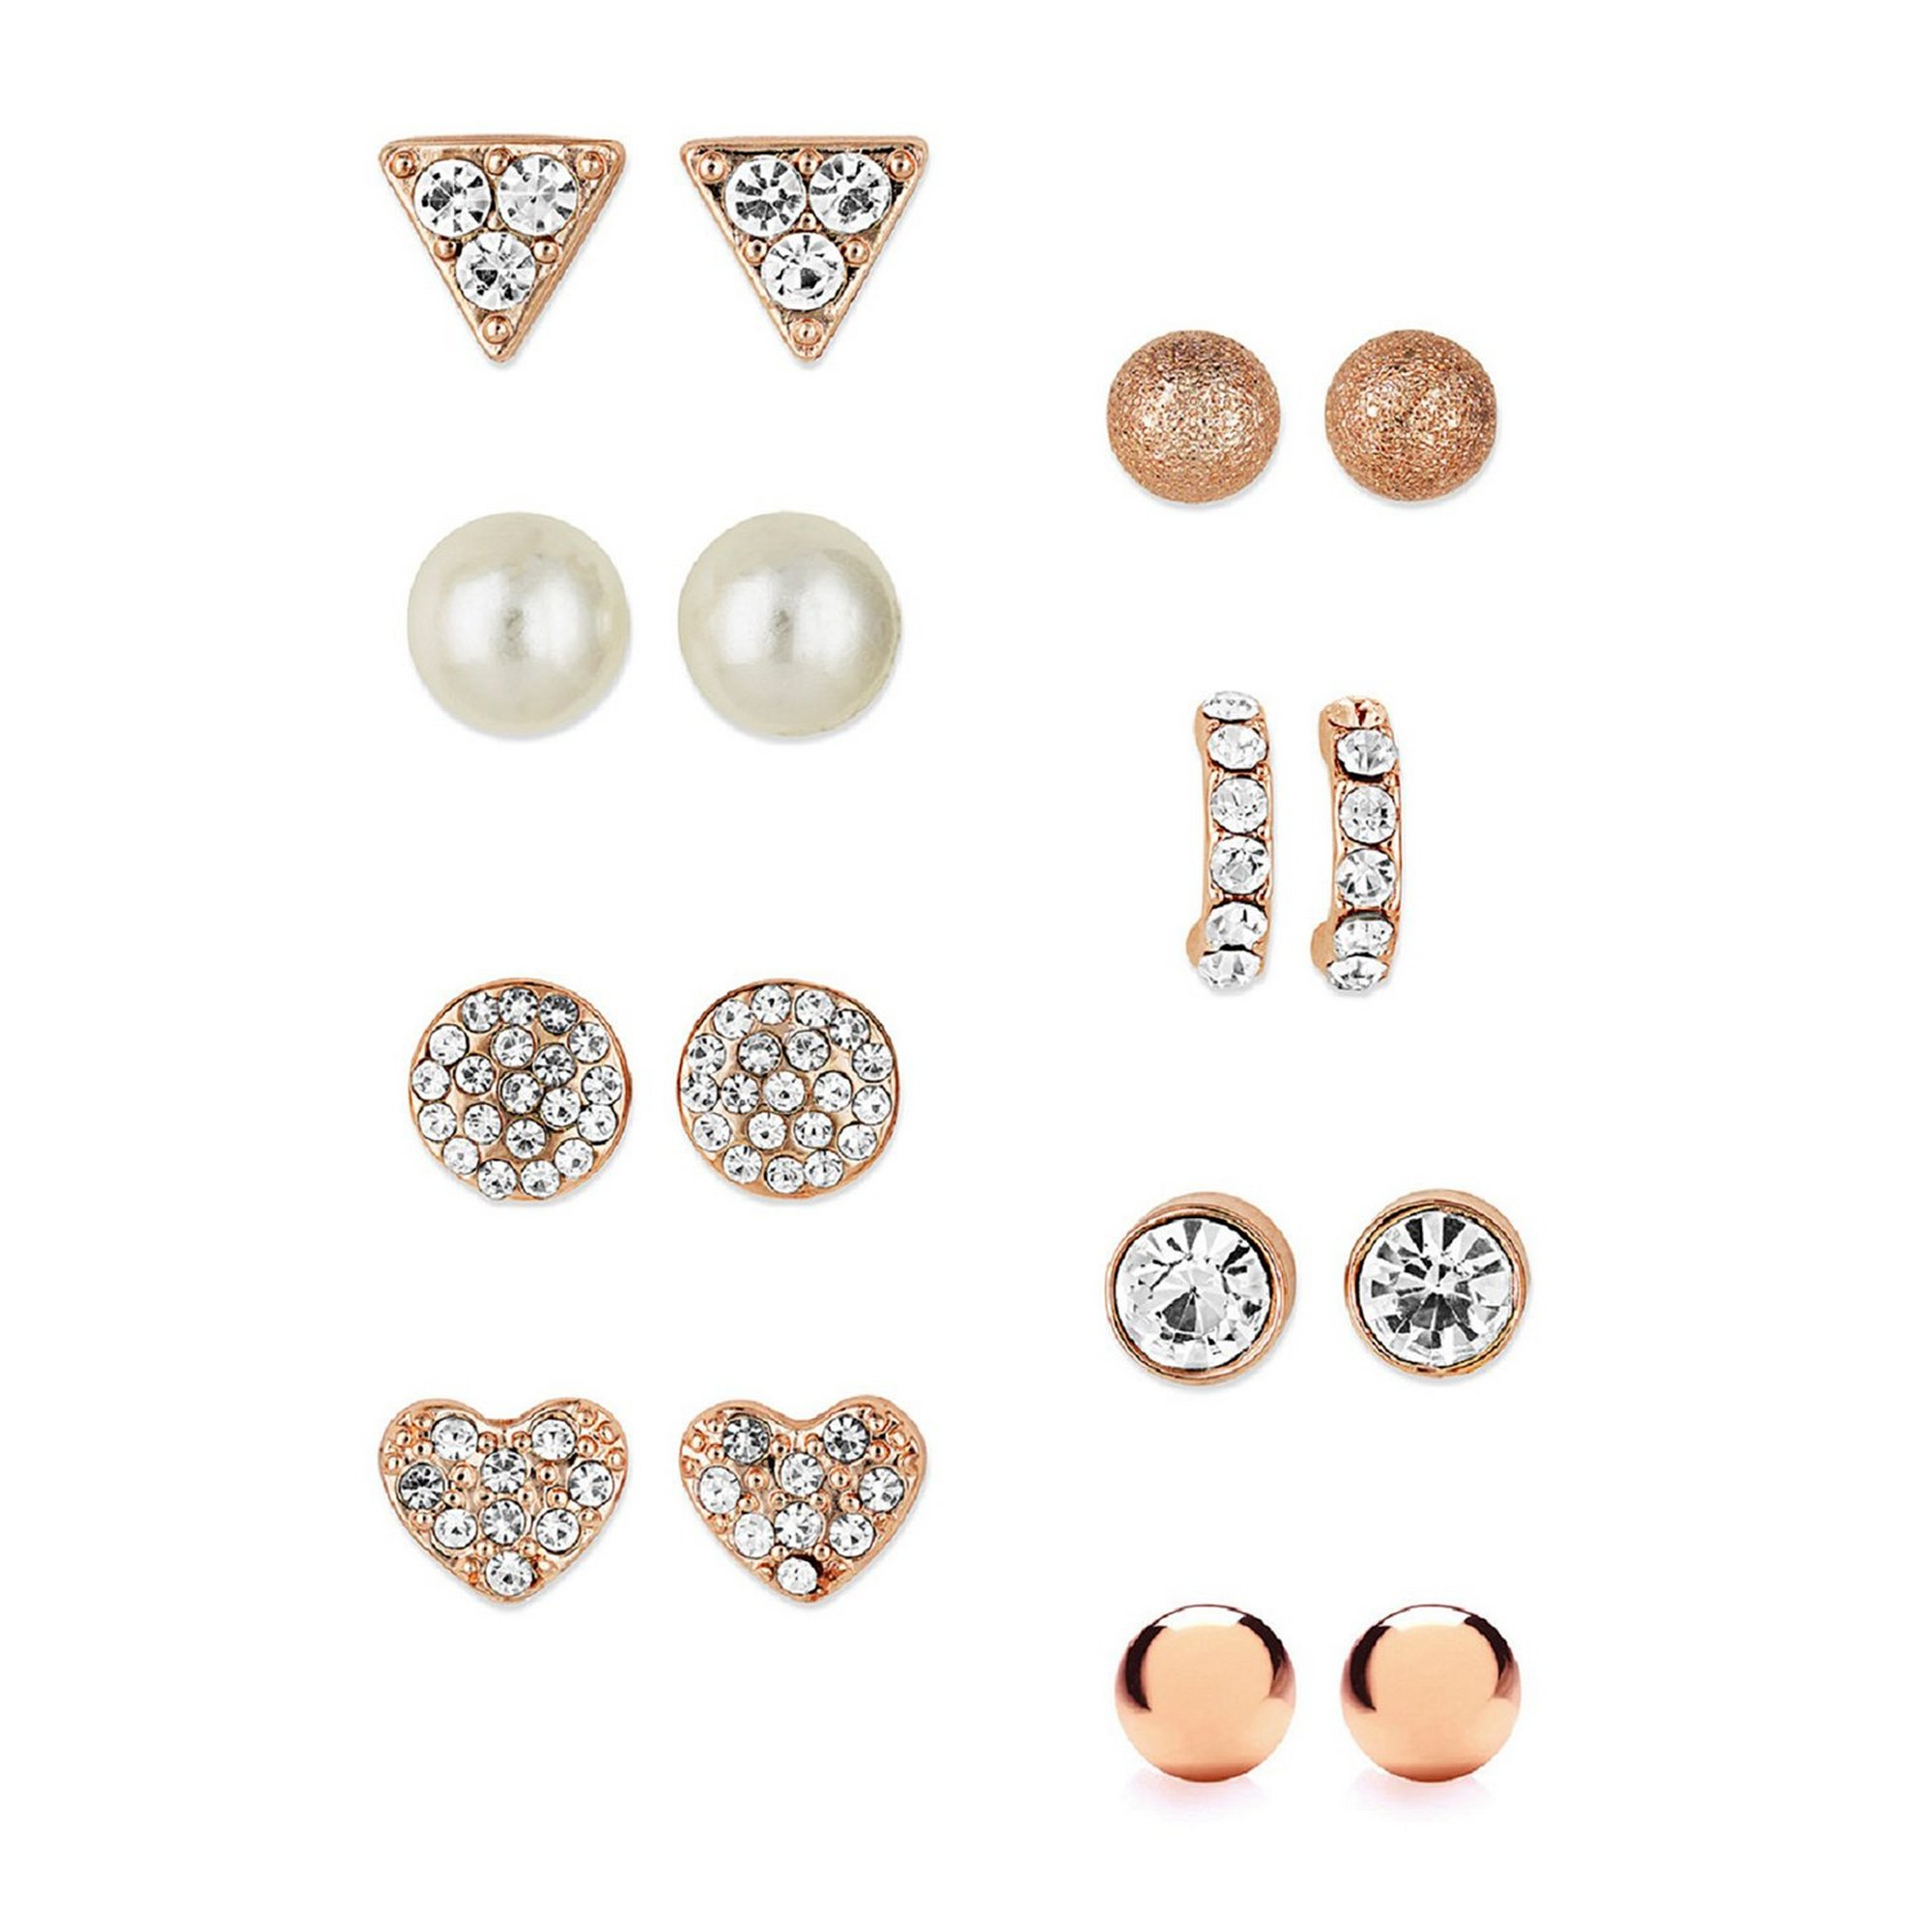 Image of Buckley London Rose Gold 8-Piece Stud Earring Set